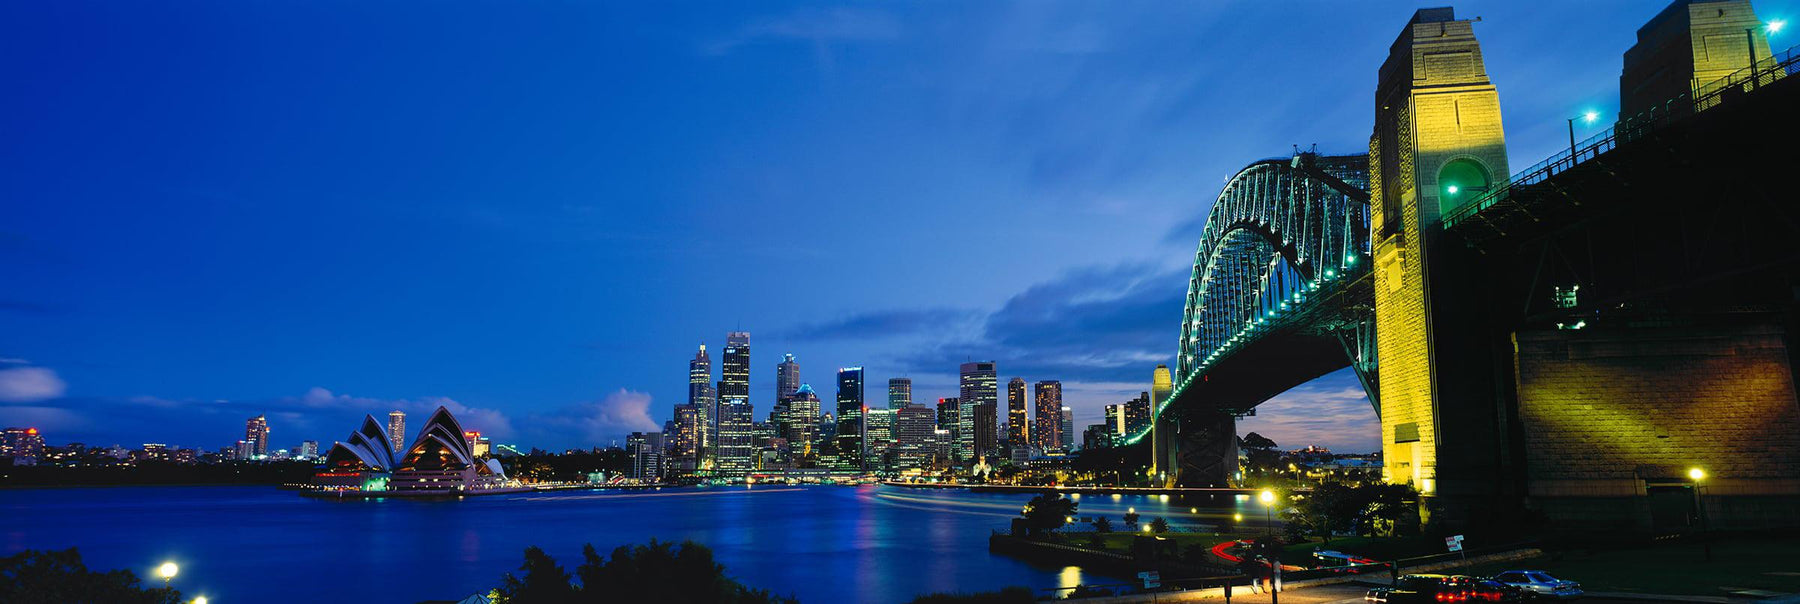 Sydney Harbour Bridge at twilight with The Opera and city of Sydney Australia in the background